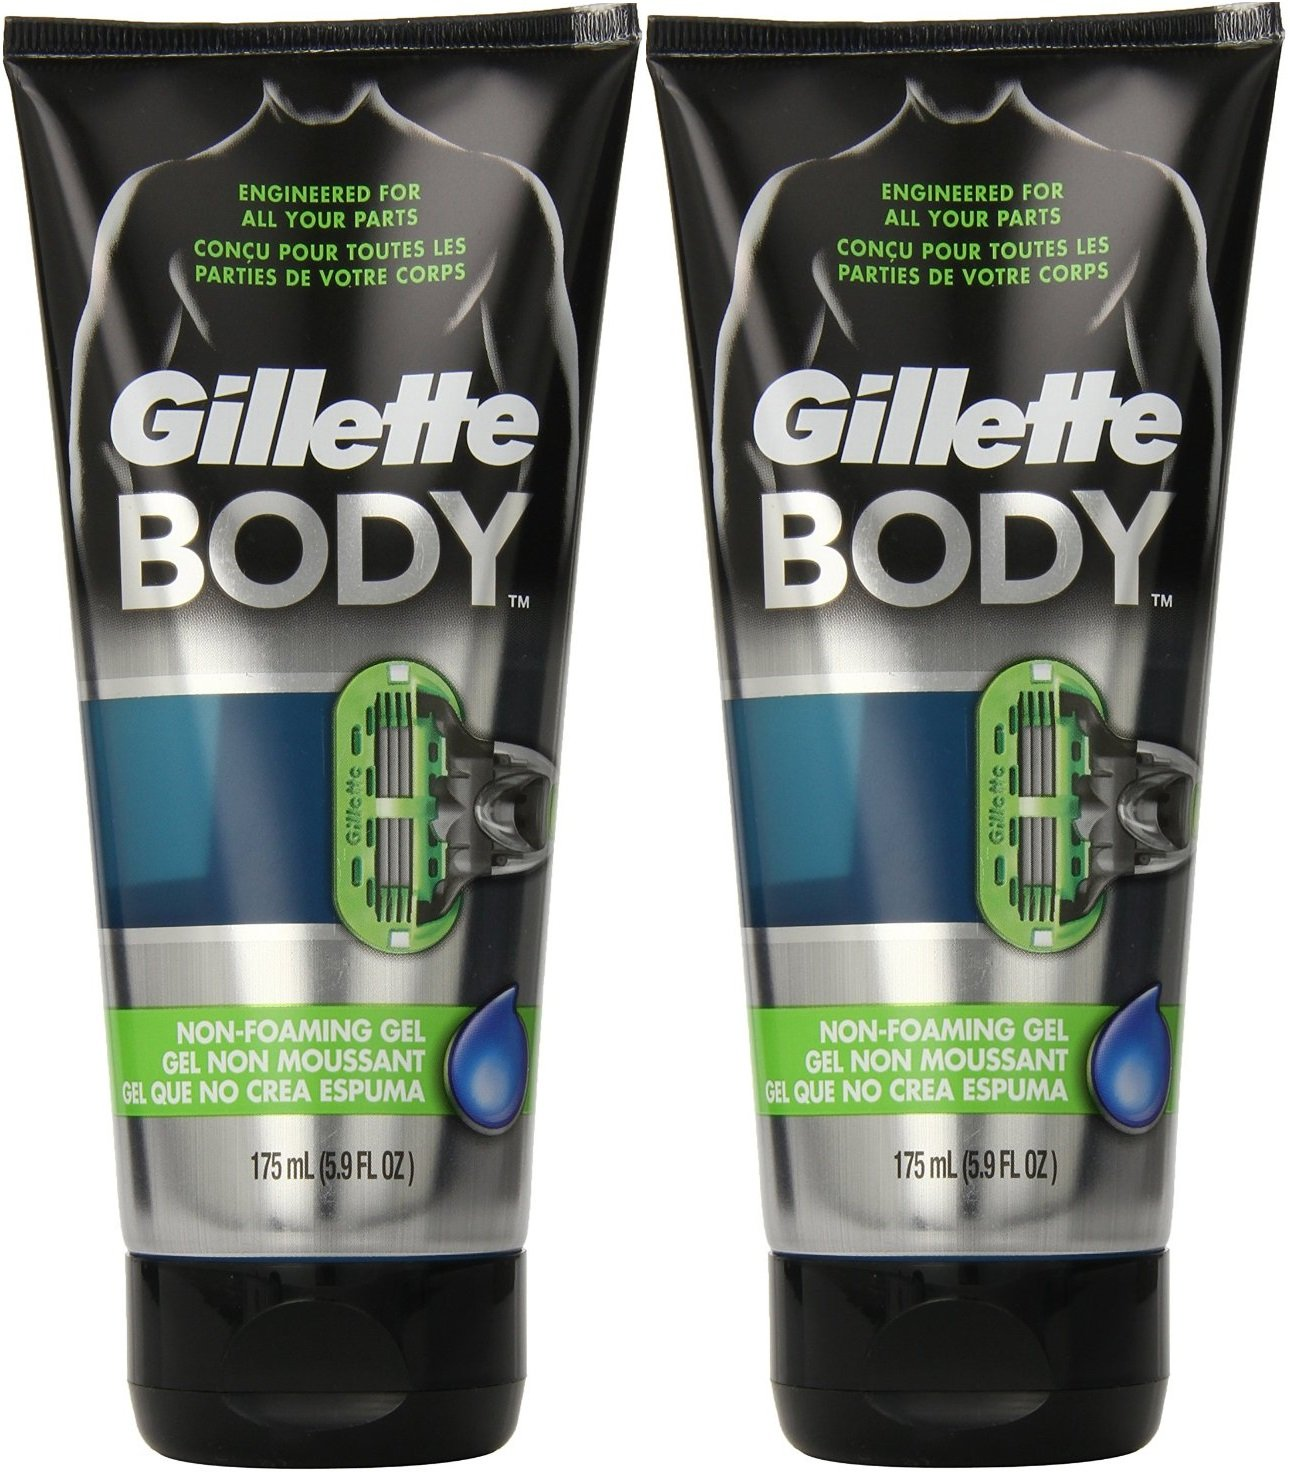 Gillette Body Transparent Tube Shaving Gel 175ml (2 PACK)